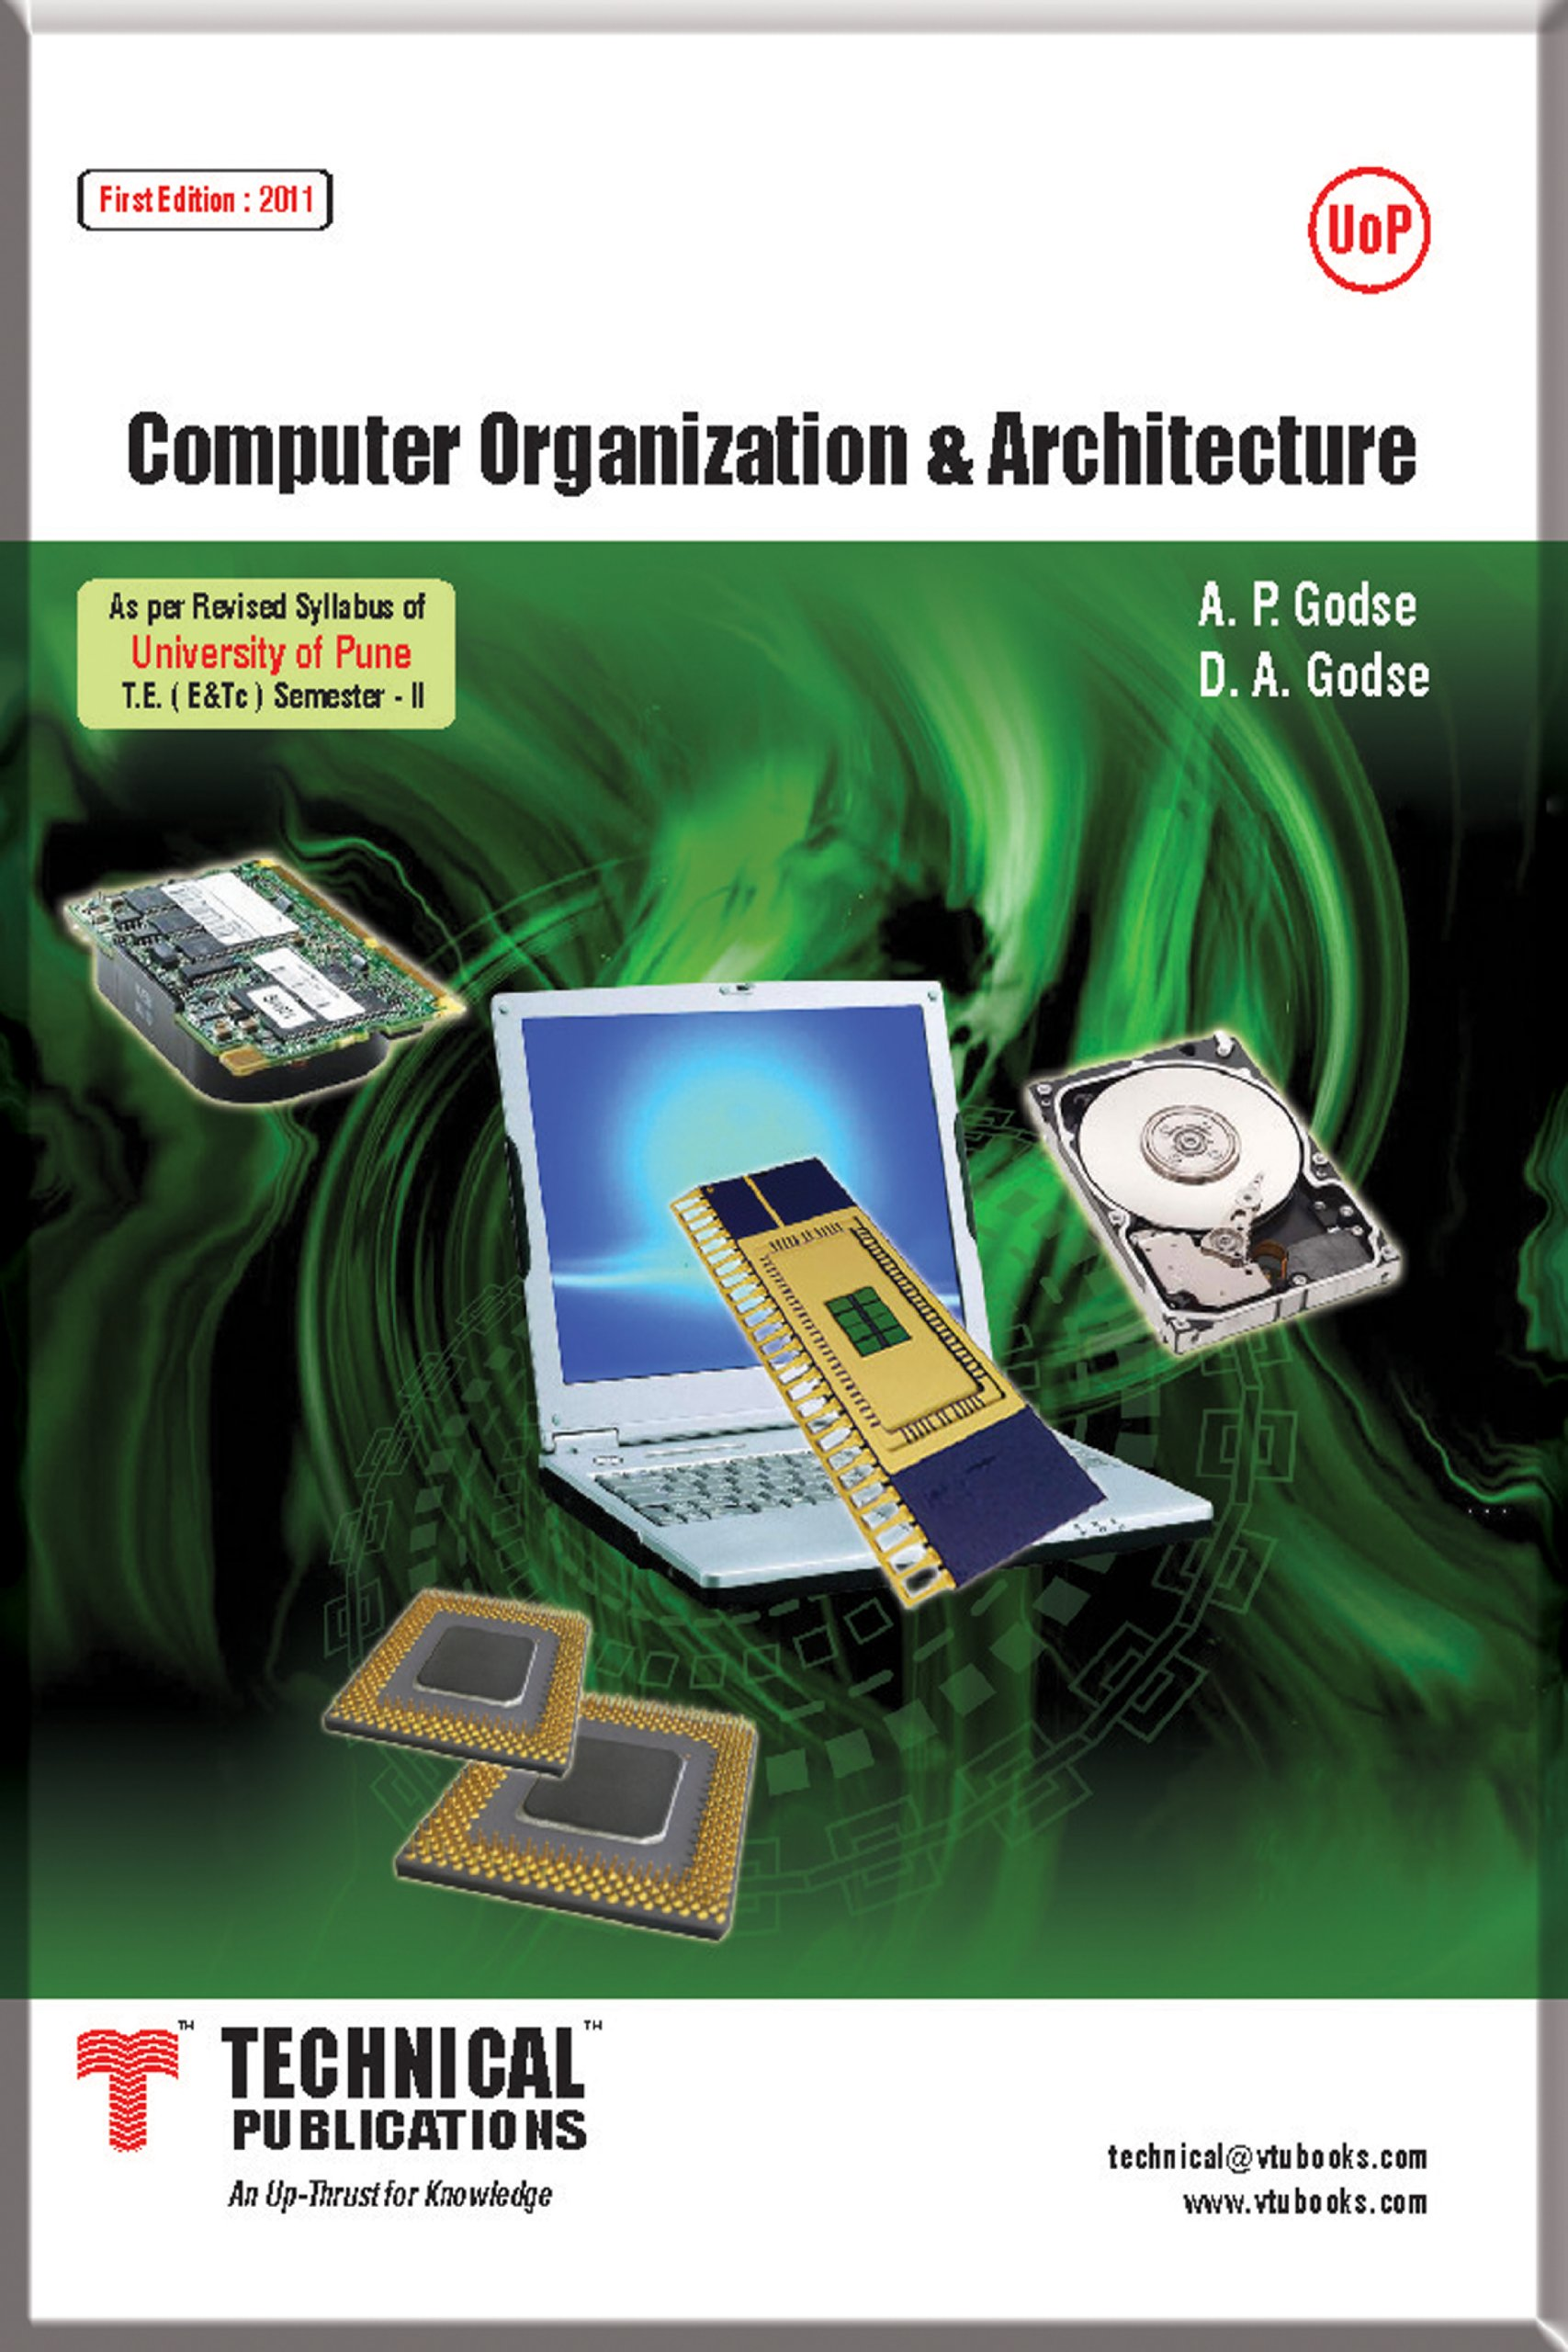 computer architecture and organization by ap godse